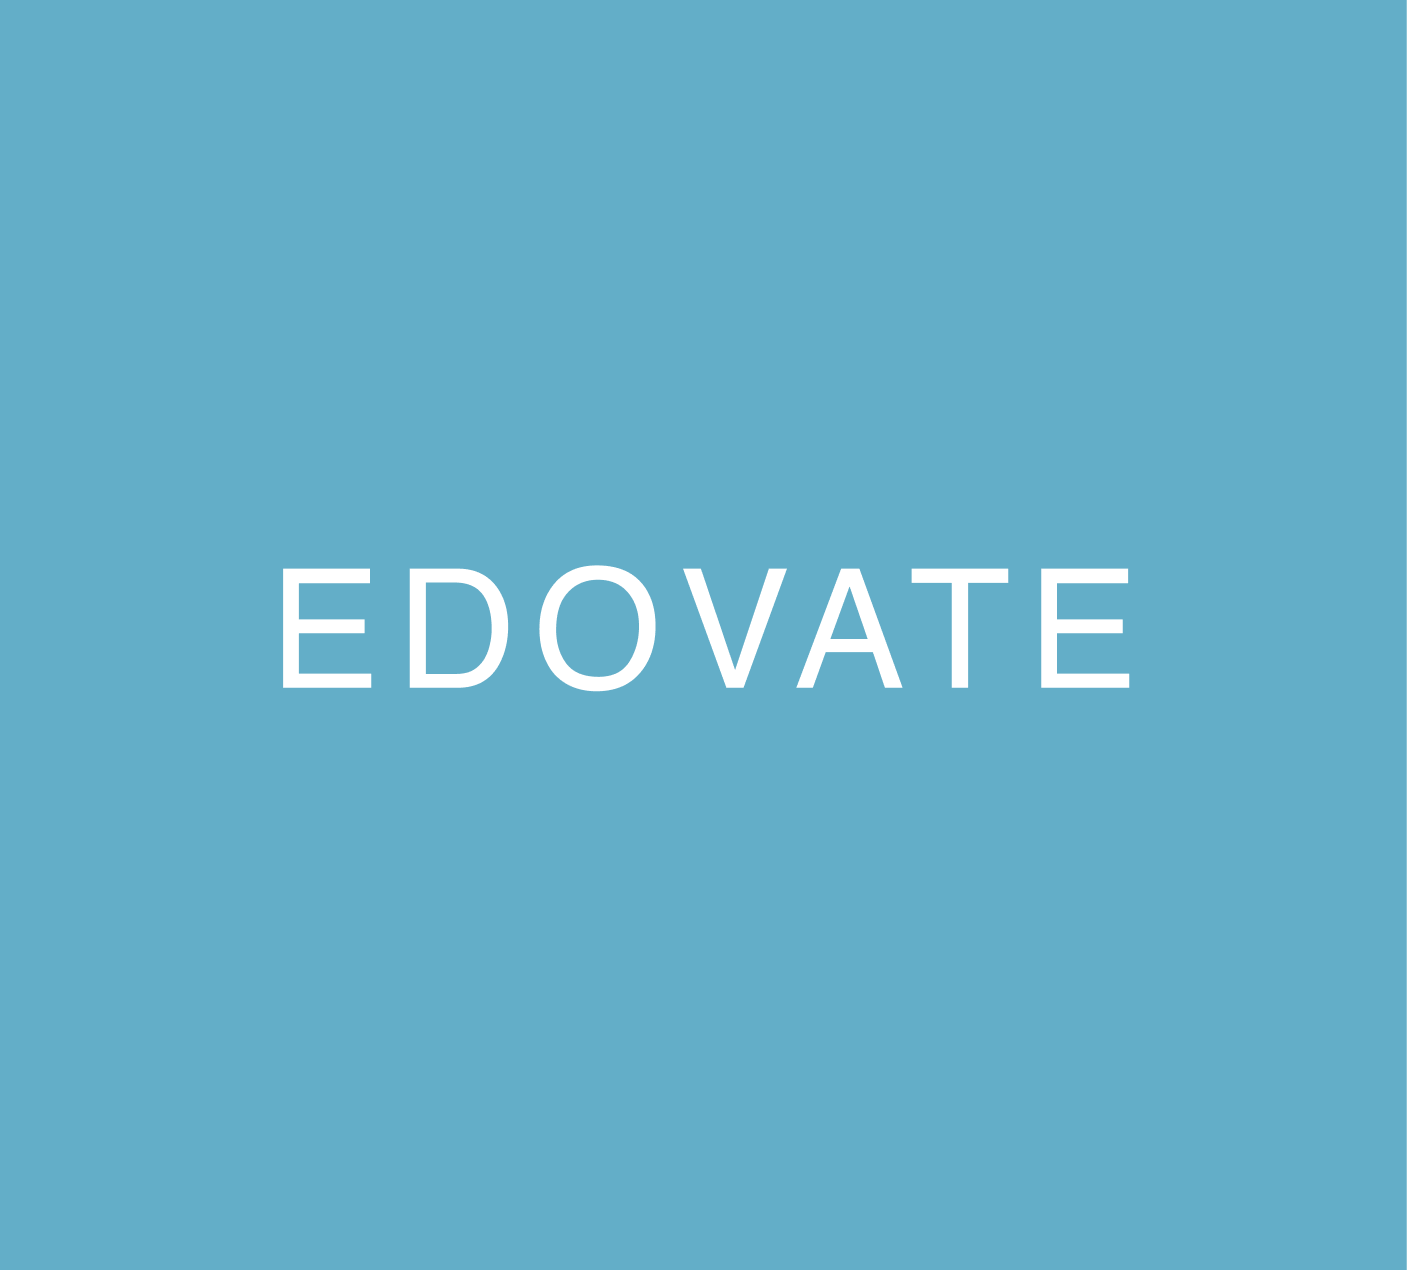 EdTech VC Firm Edovate